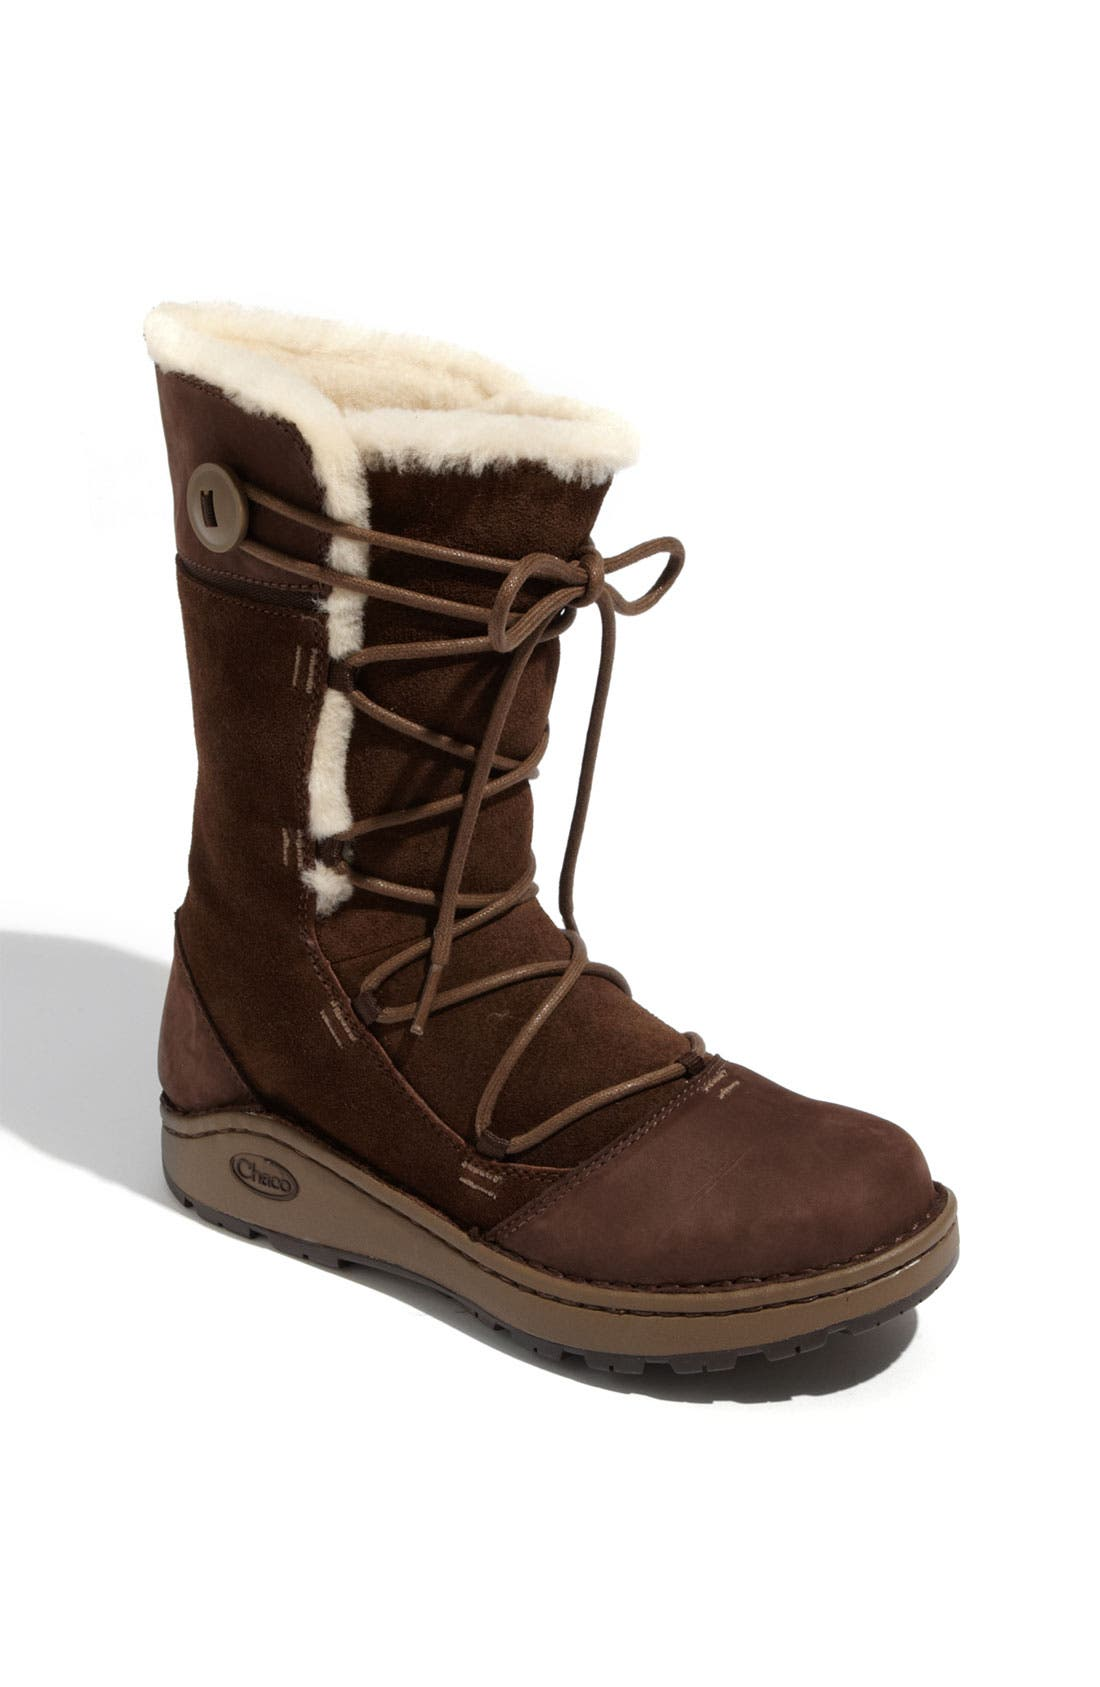 Alternate Image 1 Selected - Chaco 'Belyn' Boot